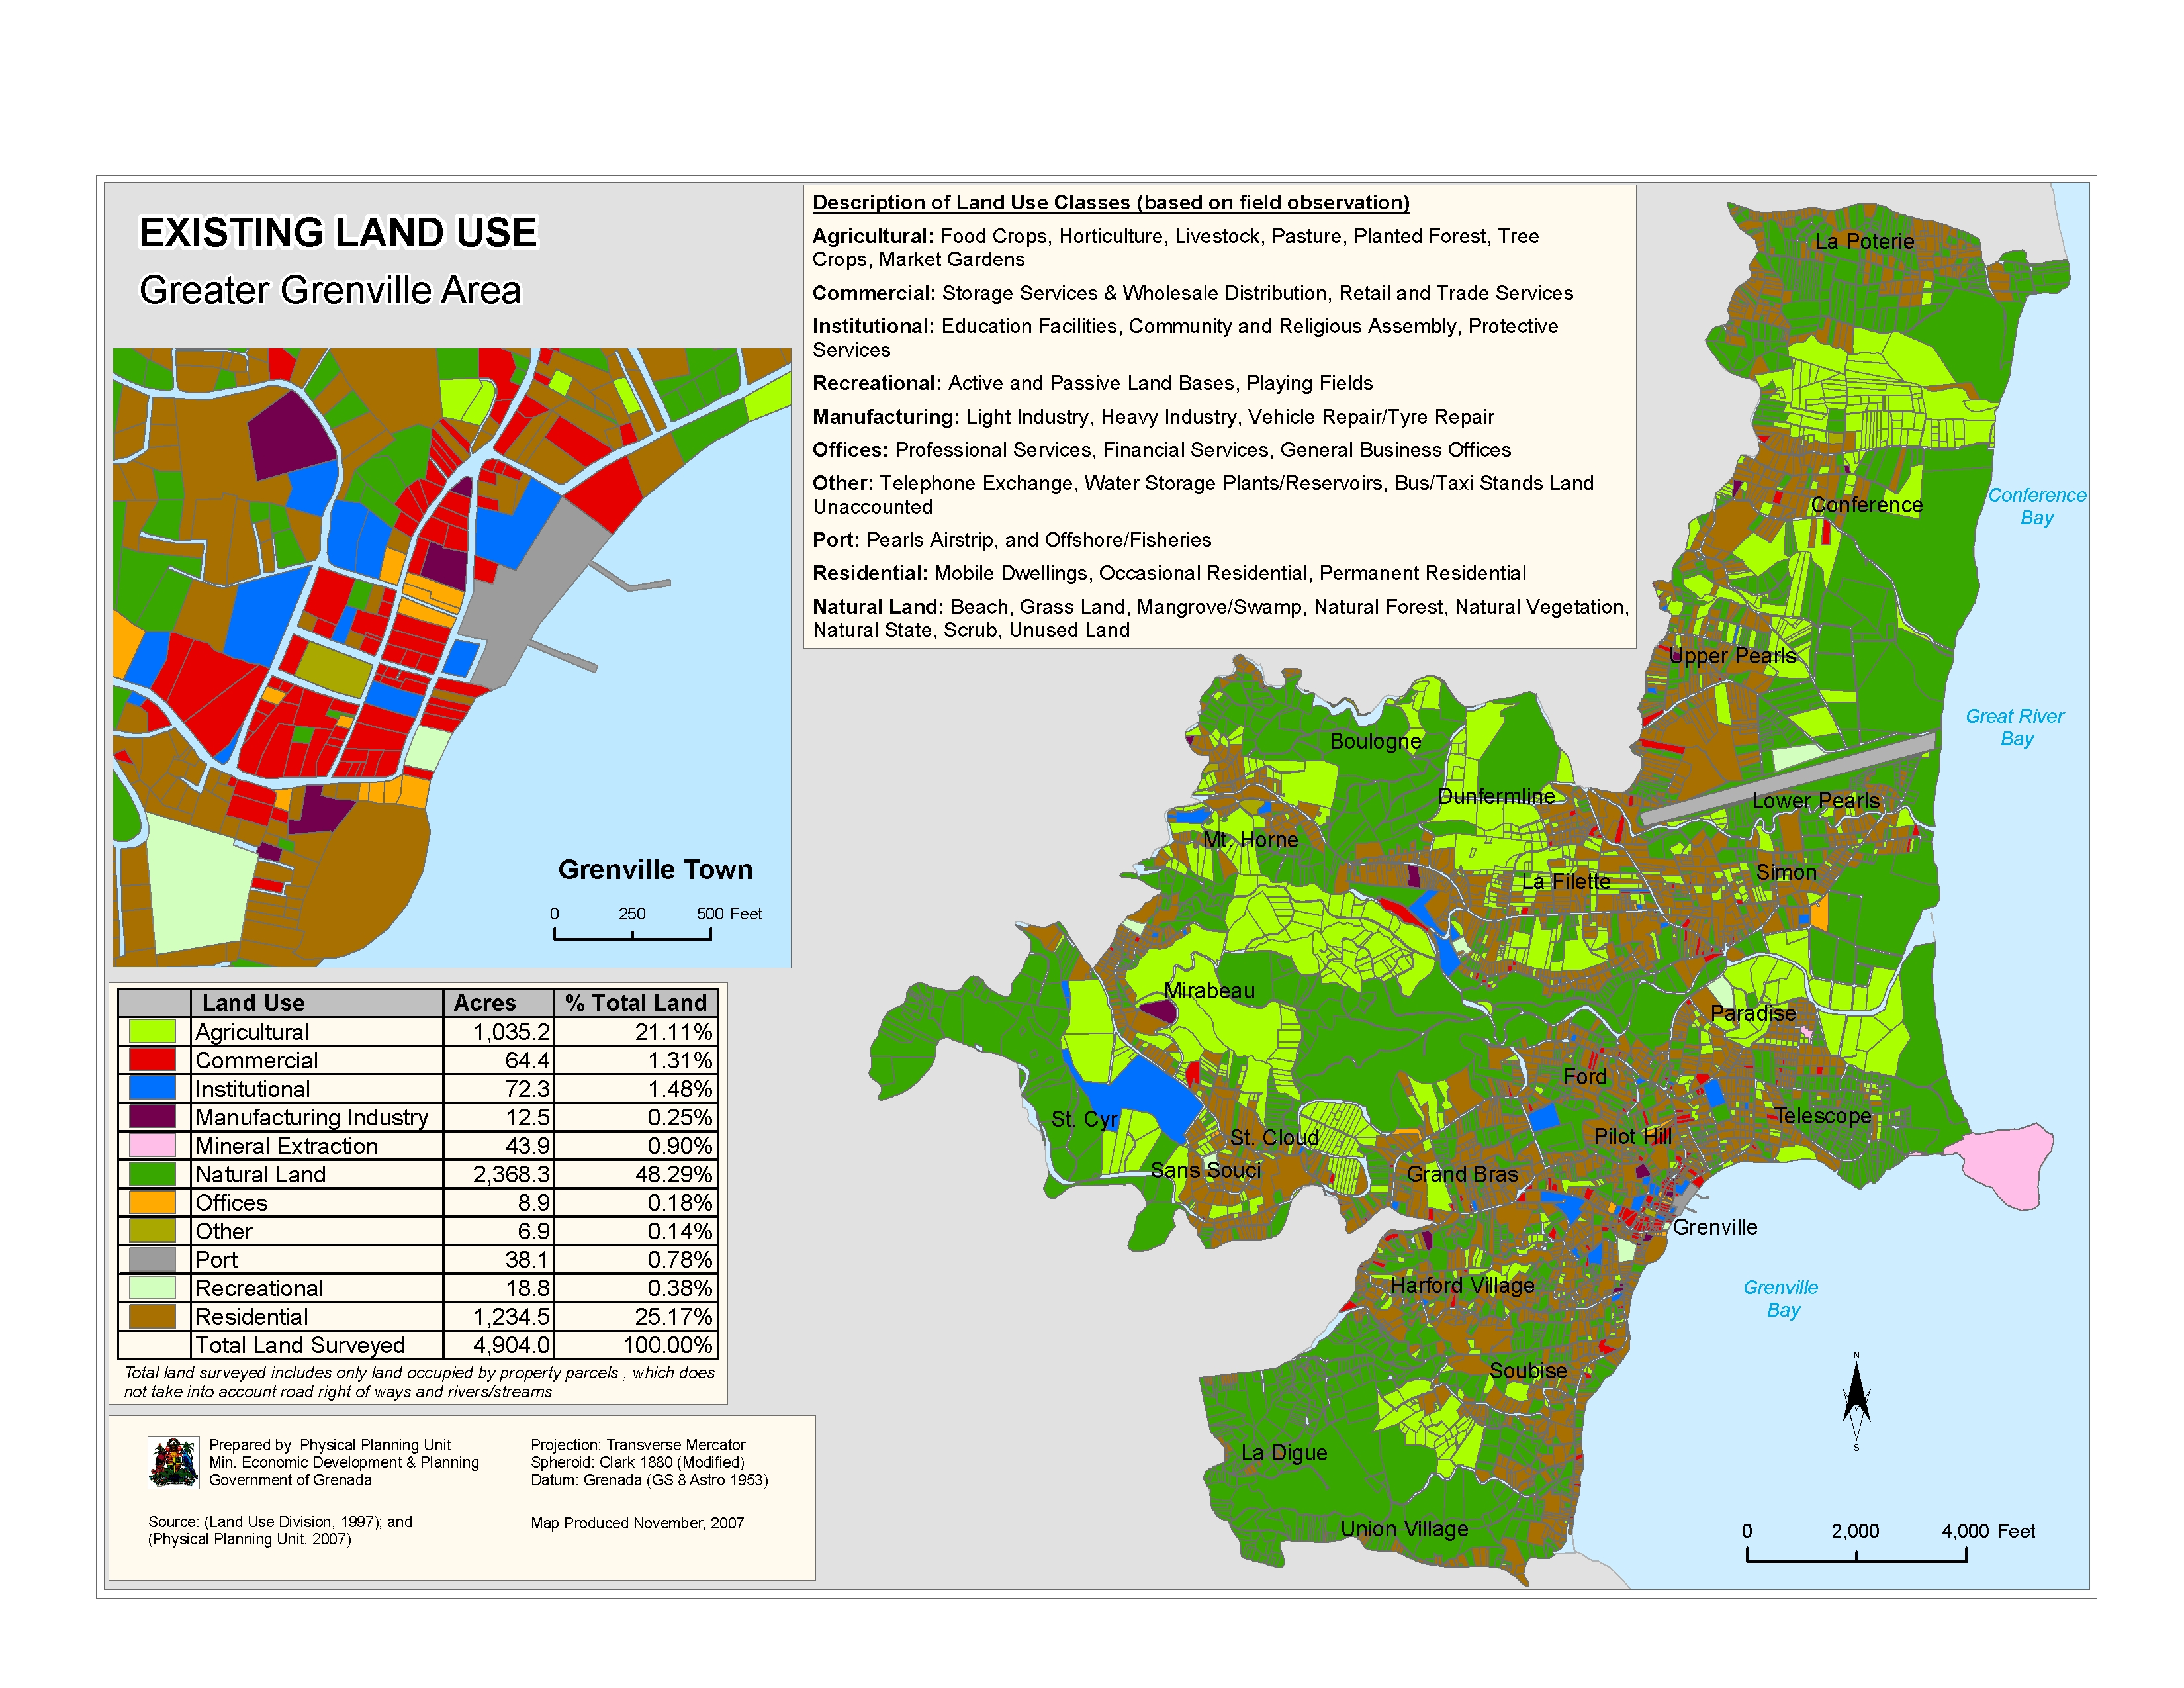 Land categories and types of permitted use of land